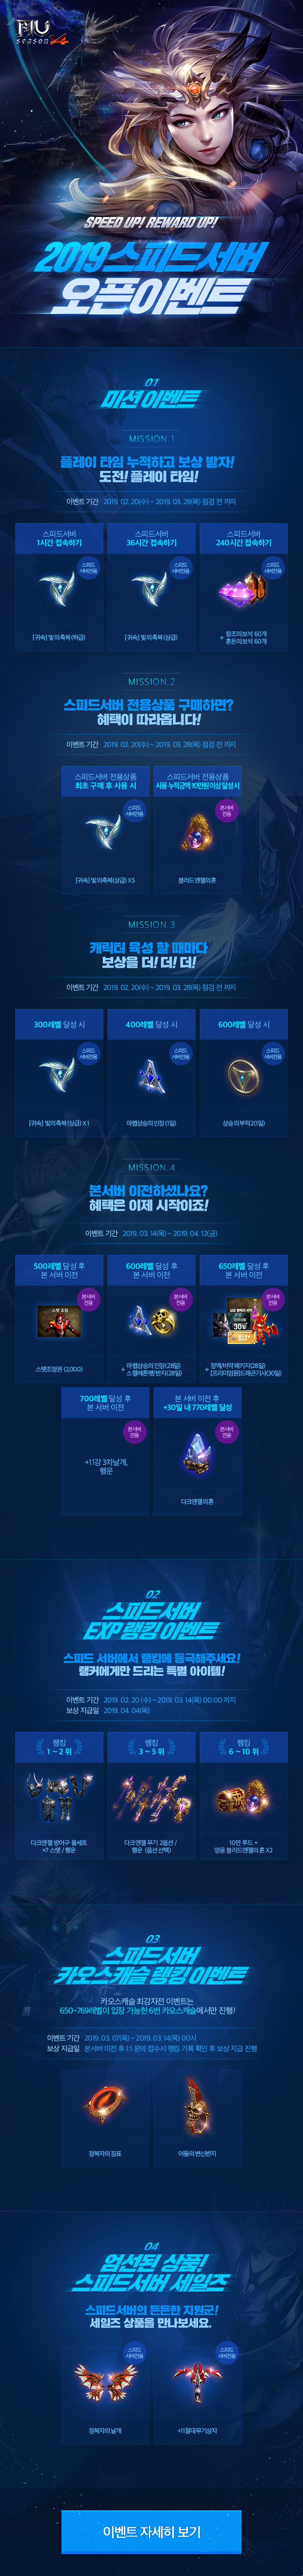 http://event.muonline.co.kr/Season14speed/openevent